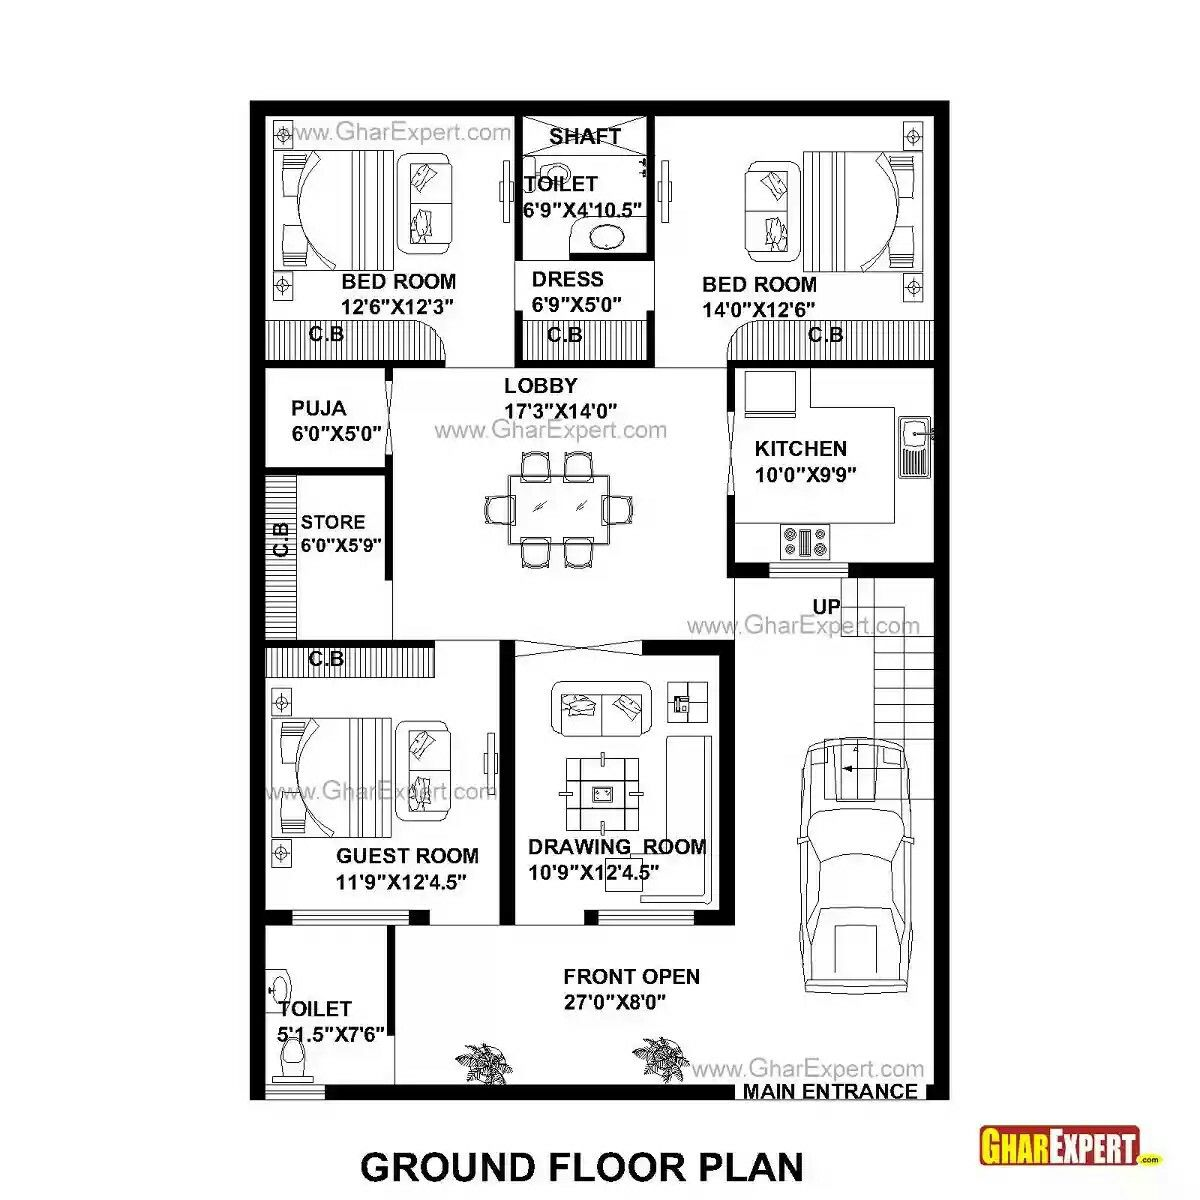 Bedroom Home Plans X on 20x20 home plans, 20x24 home plans, 30x30 home plans, 25x50 home plans, 24x30 home plans, 12x24 home plans, 16x20 home plans, 30x70 home plans, 16x16 home plans, 30x45 home plans, 50x80 home plans, 16x40 home plans, 16x24 home plans, 24x36 home plans, 24x40 home plans, 40x40 home plans, 16x36 home plans, 40x50 home plans, 40x60 home plans, 20x40 home plans,